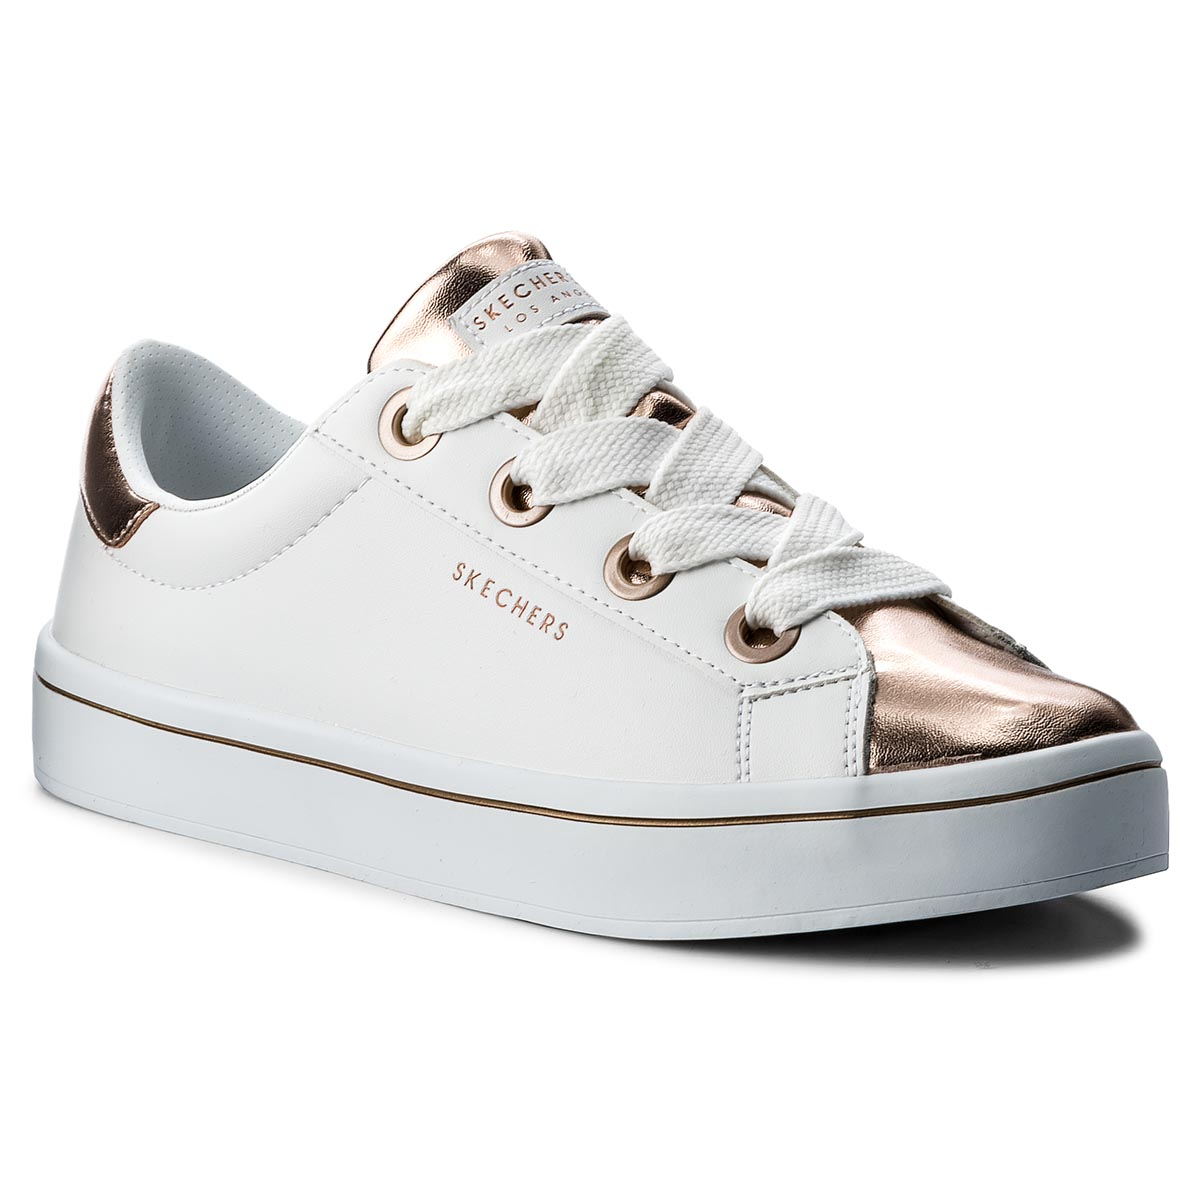 Sneakers SKECHERS - Medal Toes 982/WTRG White Rose Gold